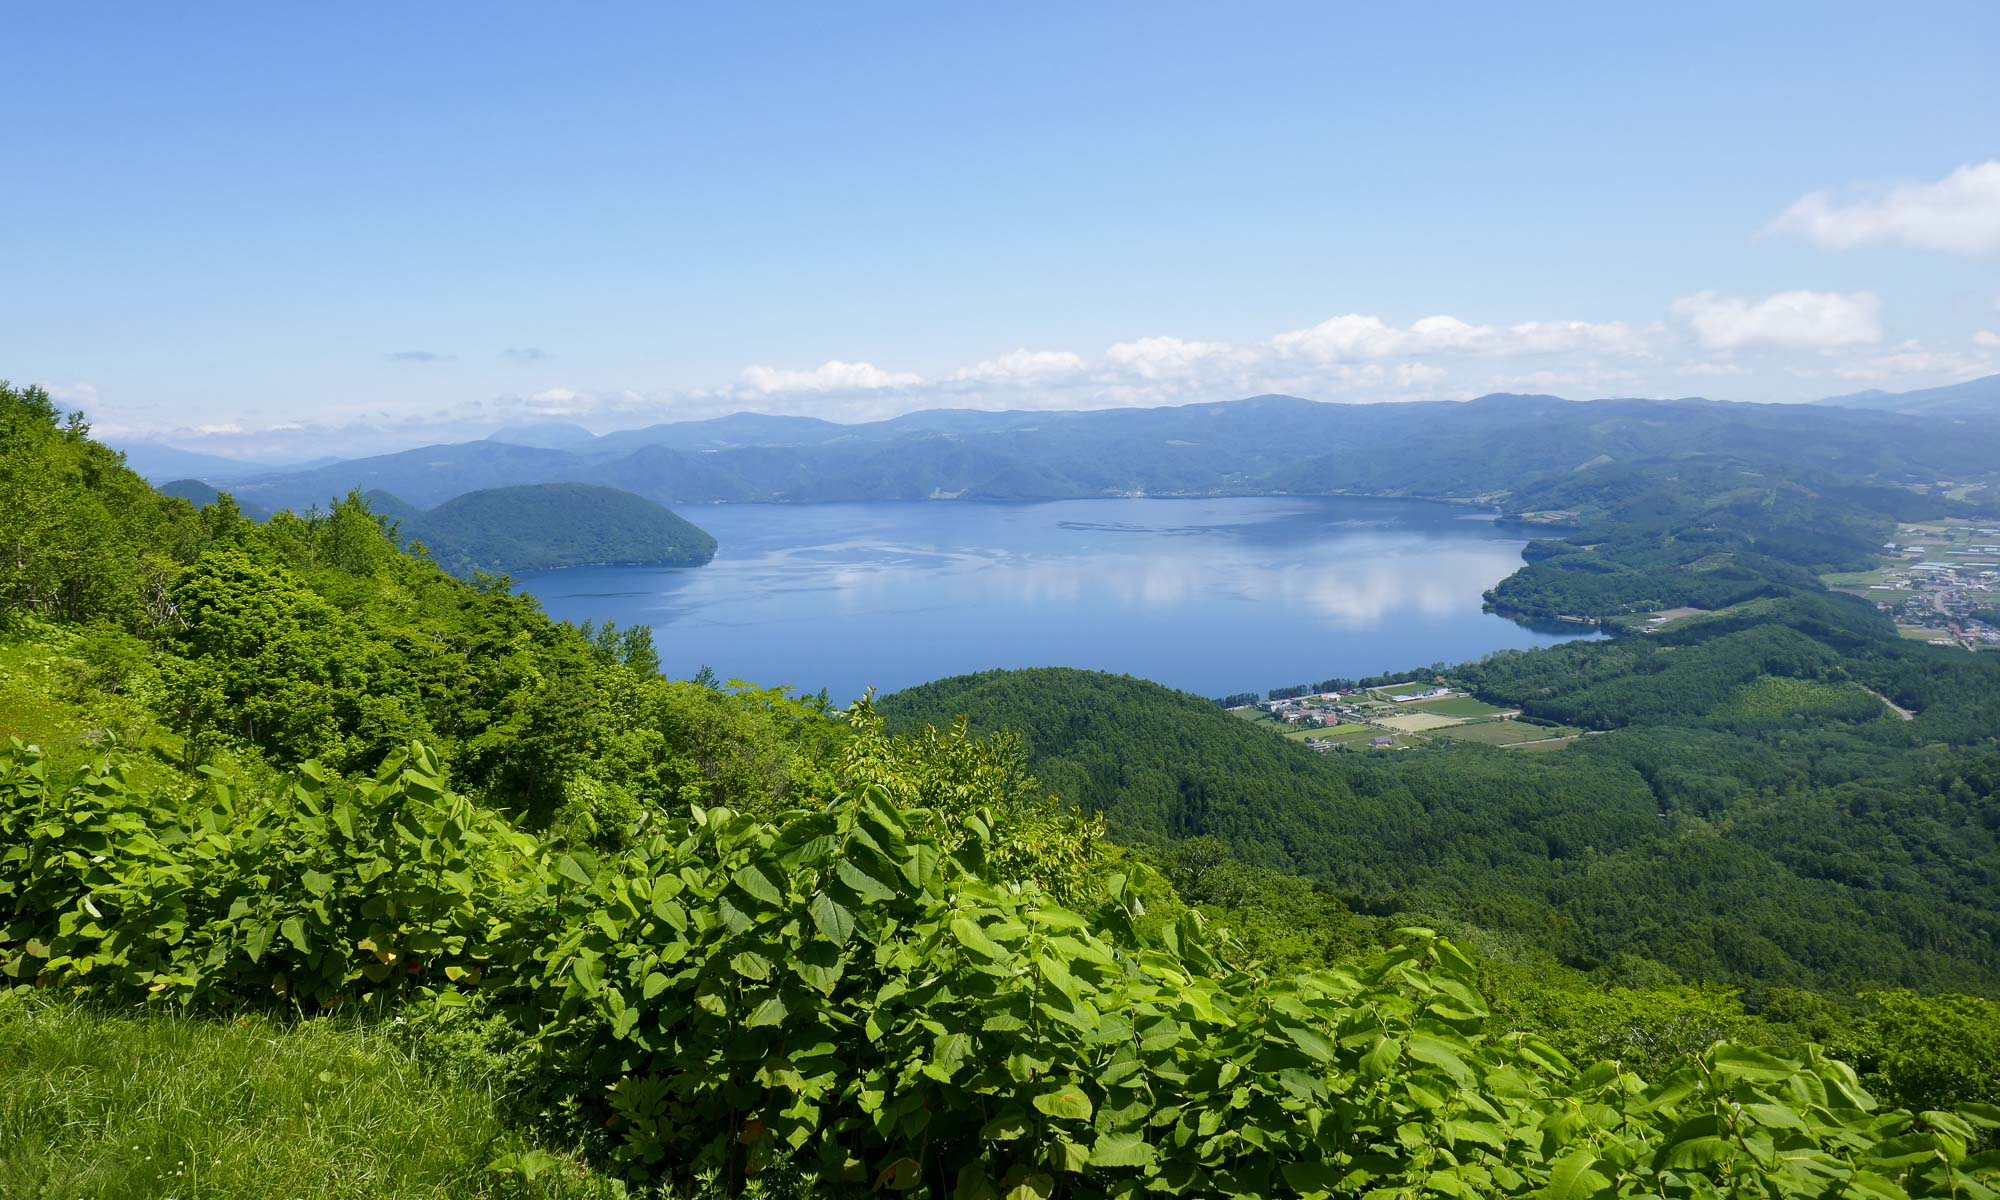 View of Lake Toya from the first observation point